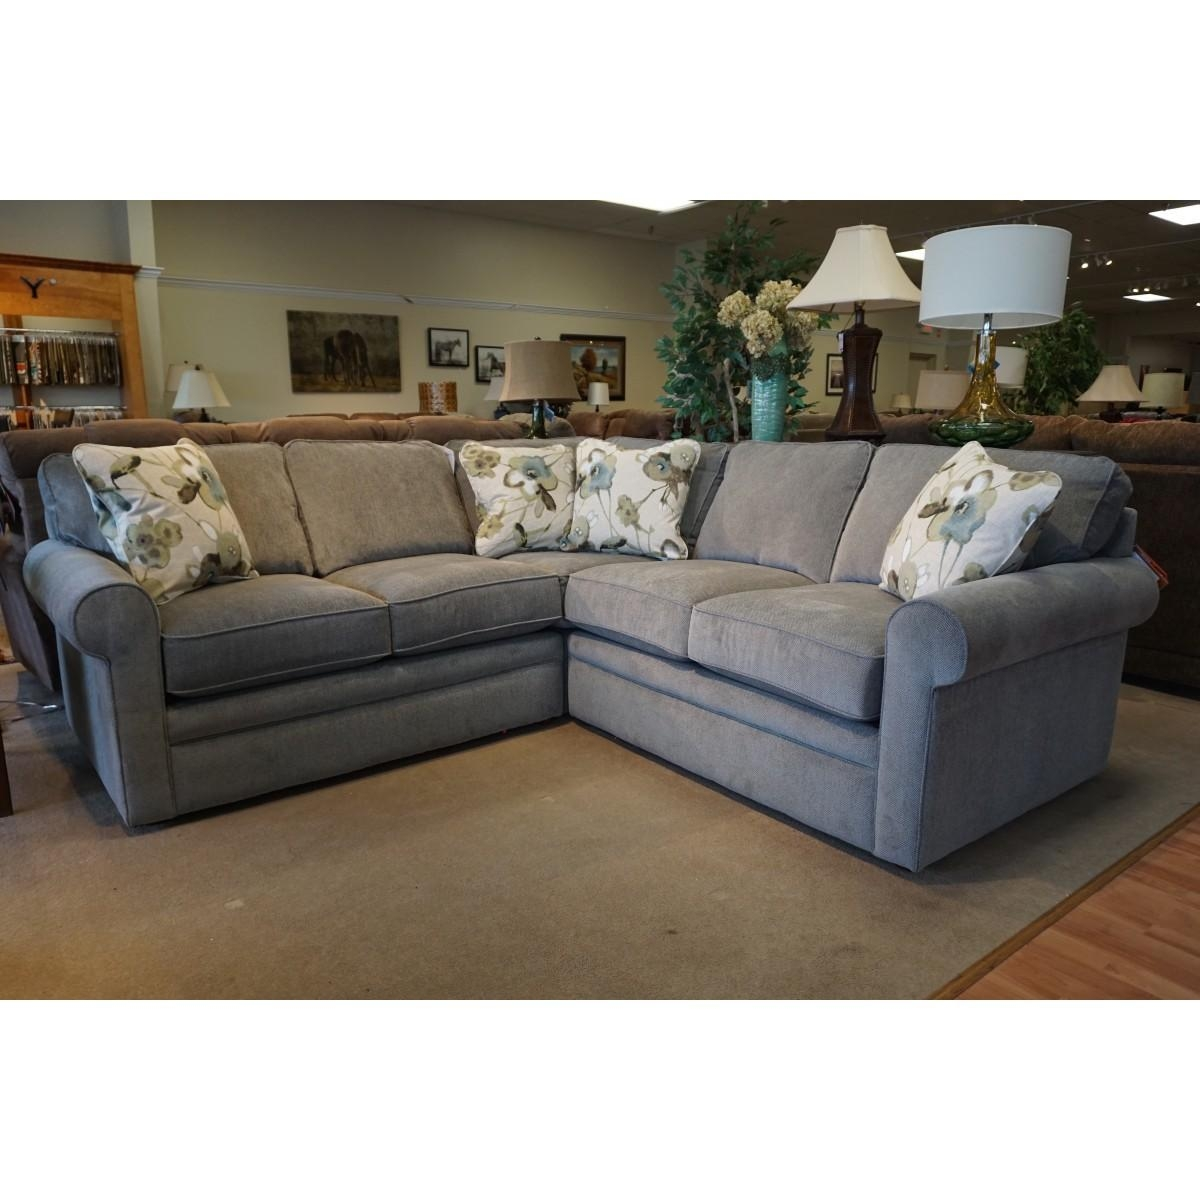 Z-Boy Collins Sectional with regard to Lazy Boy Sectional